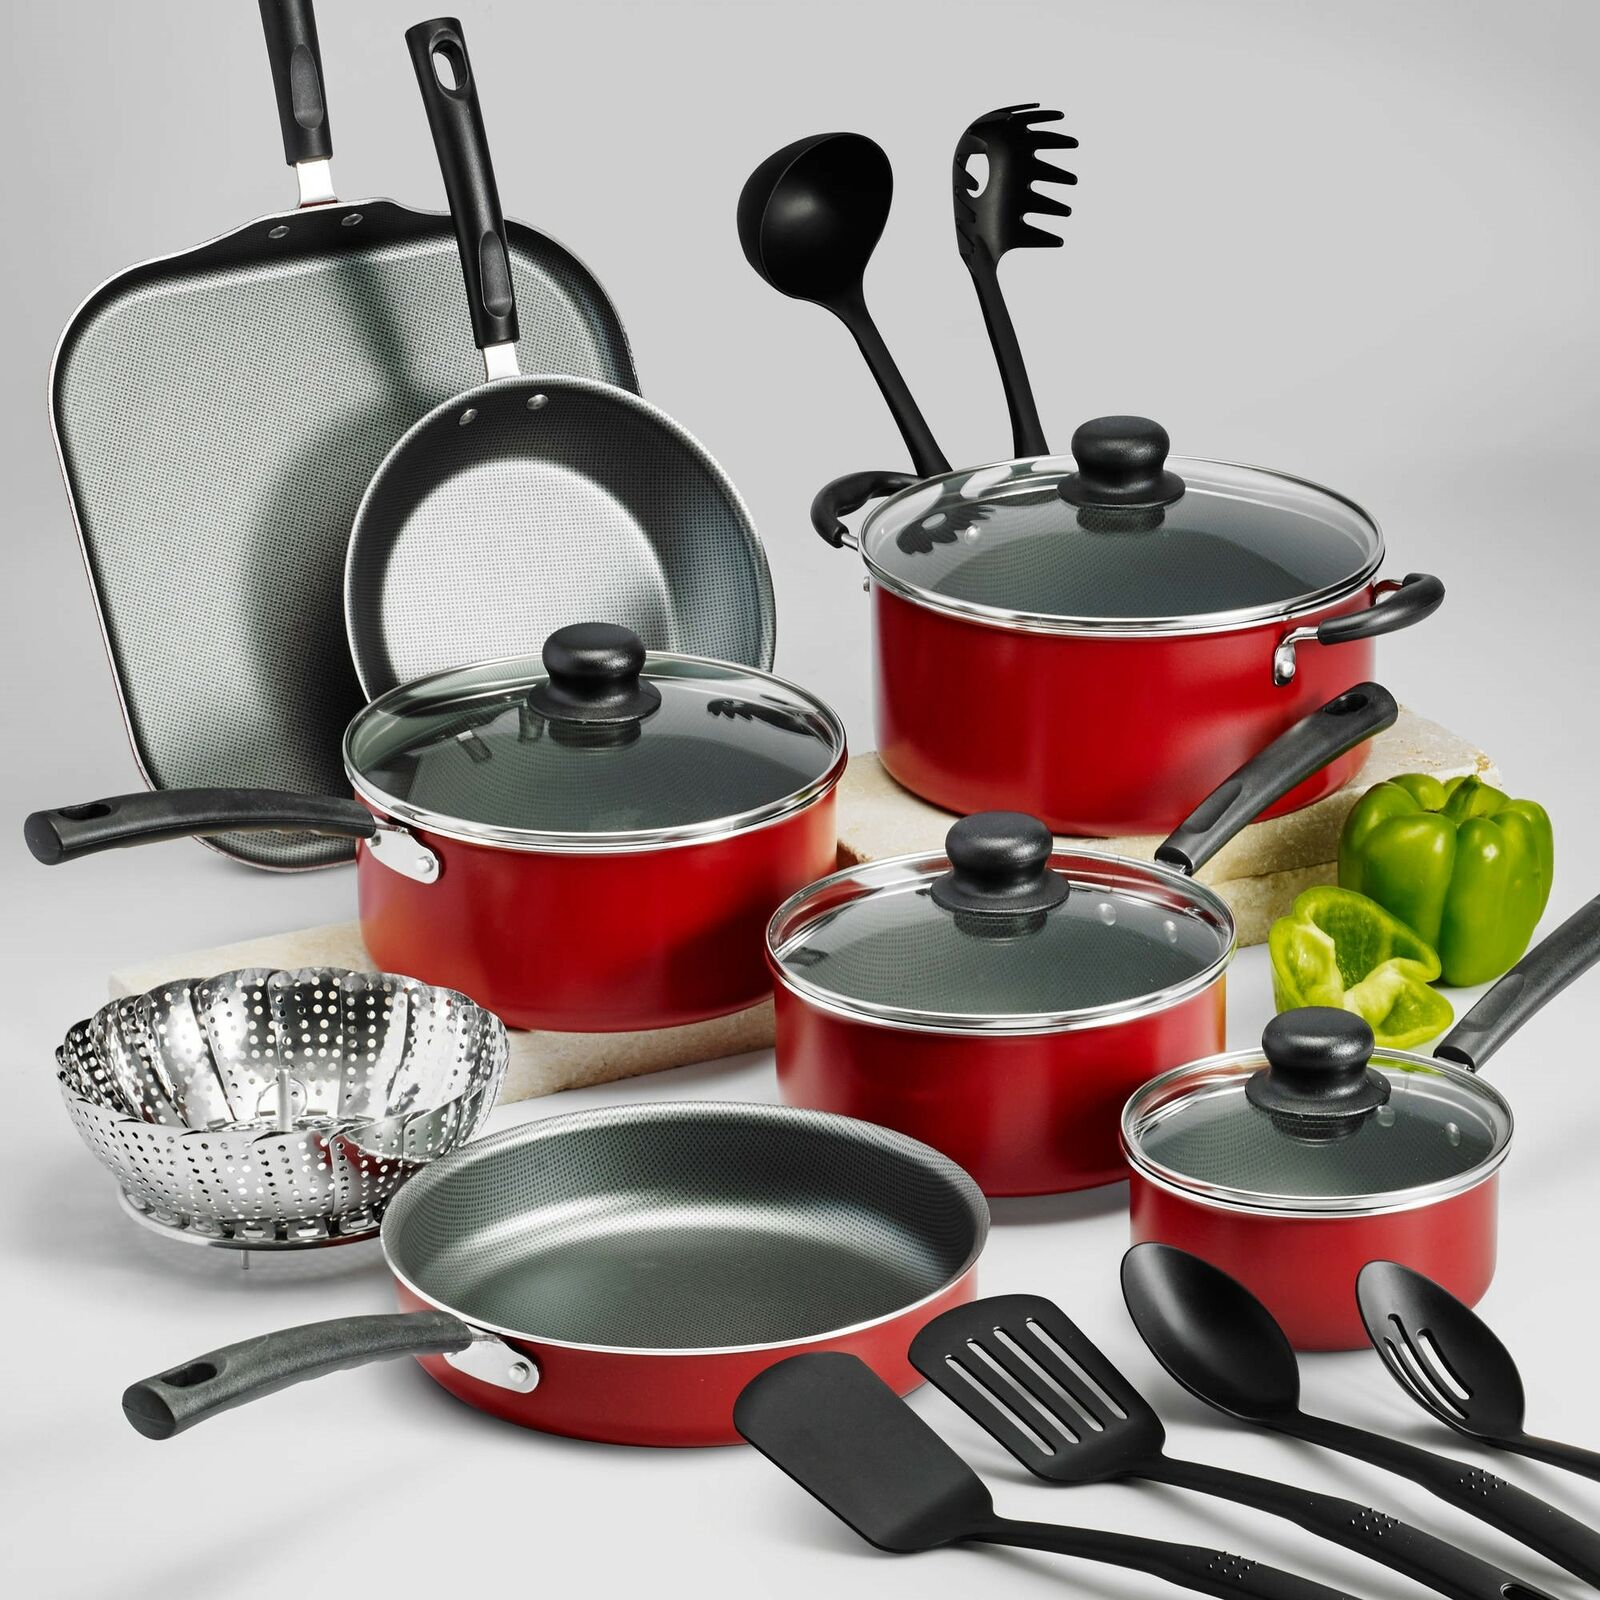 18 Piece Cookware Set Pots Pans Kitchen Cooking Non Stick Home Dinning Cook Red